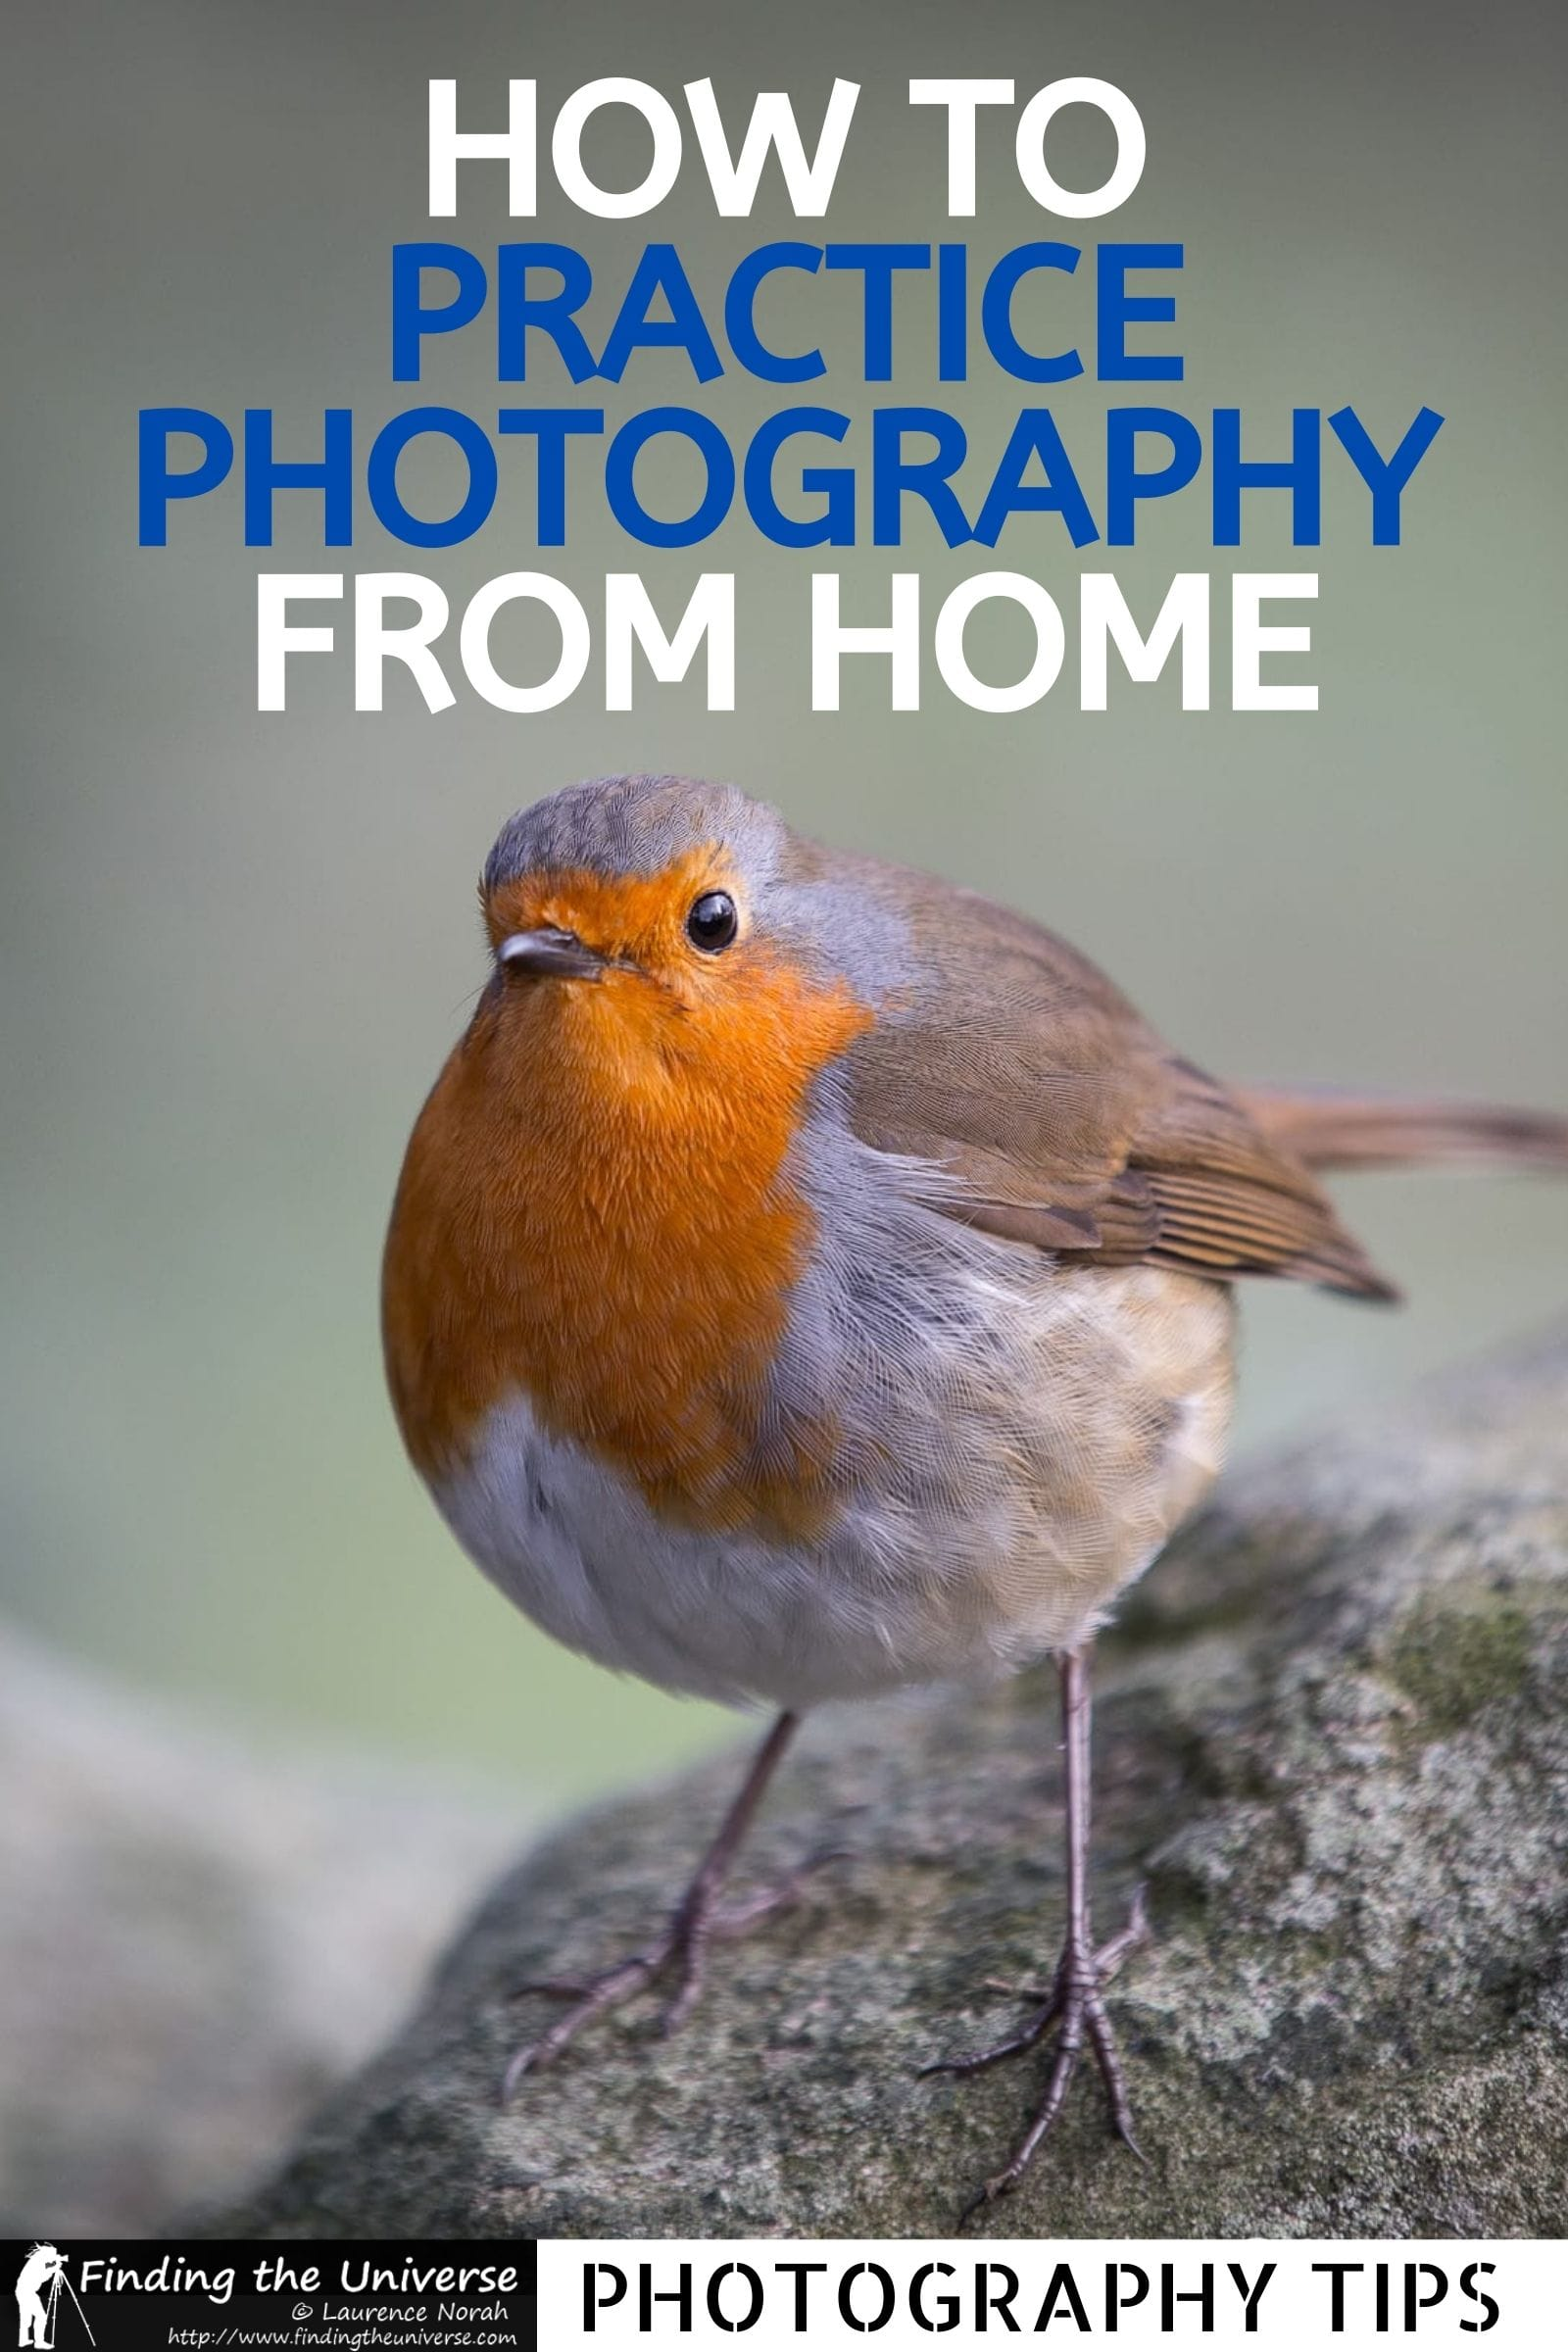 Looking to improve your photography? This guide has loads of practical tips and ideas for practicing your travel photography from home!